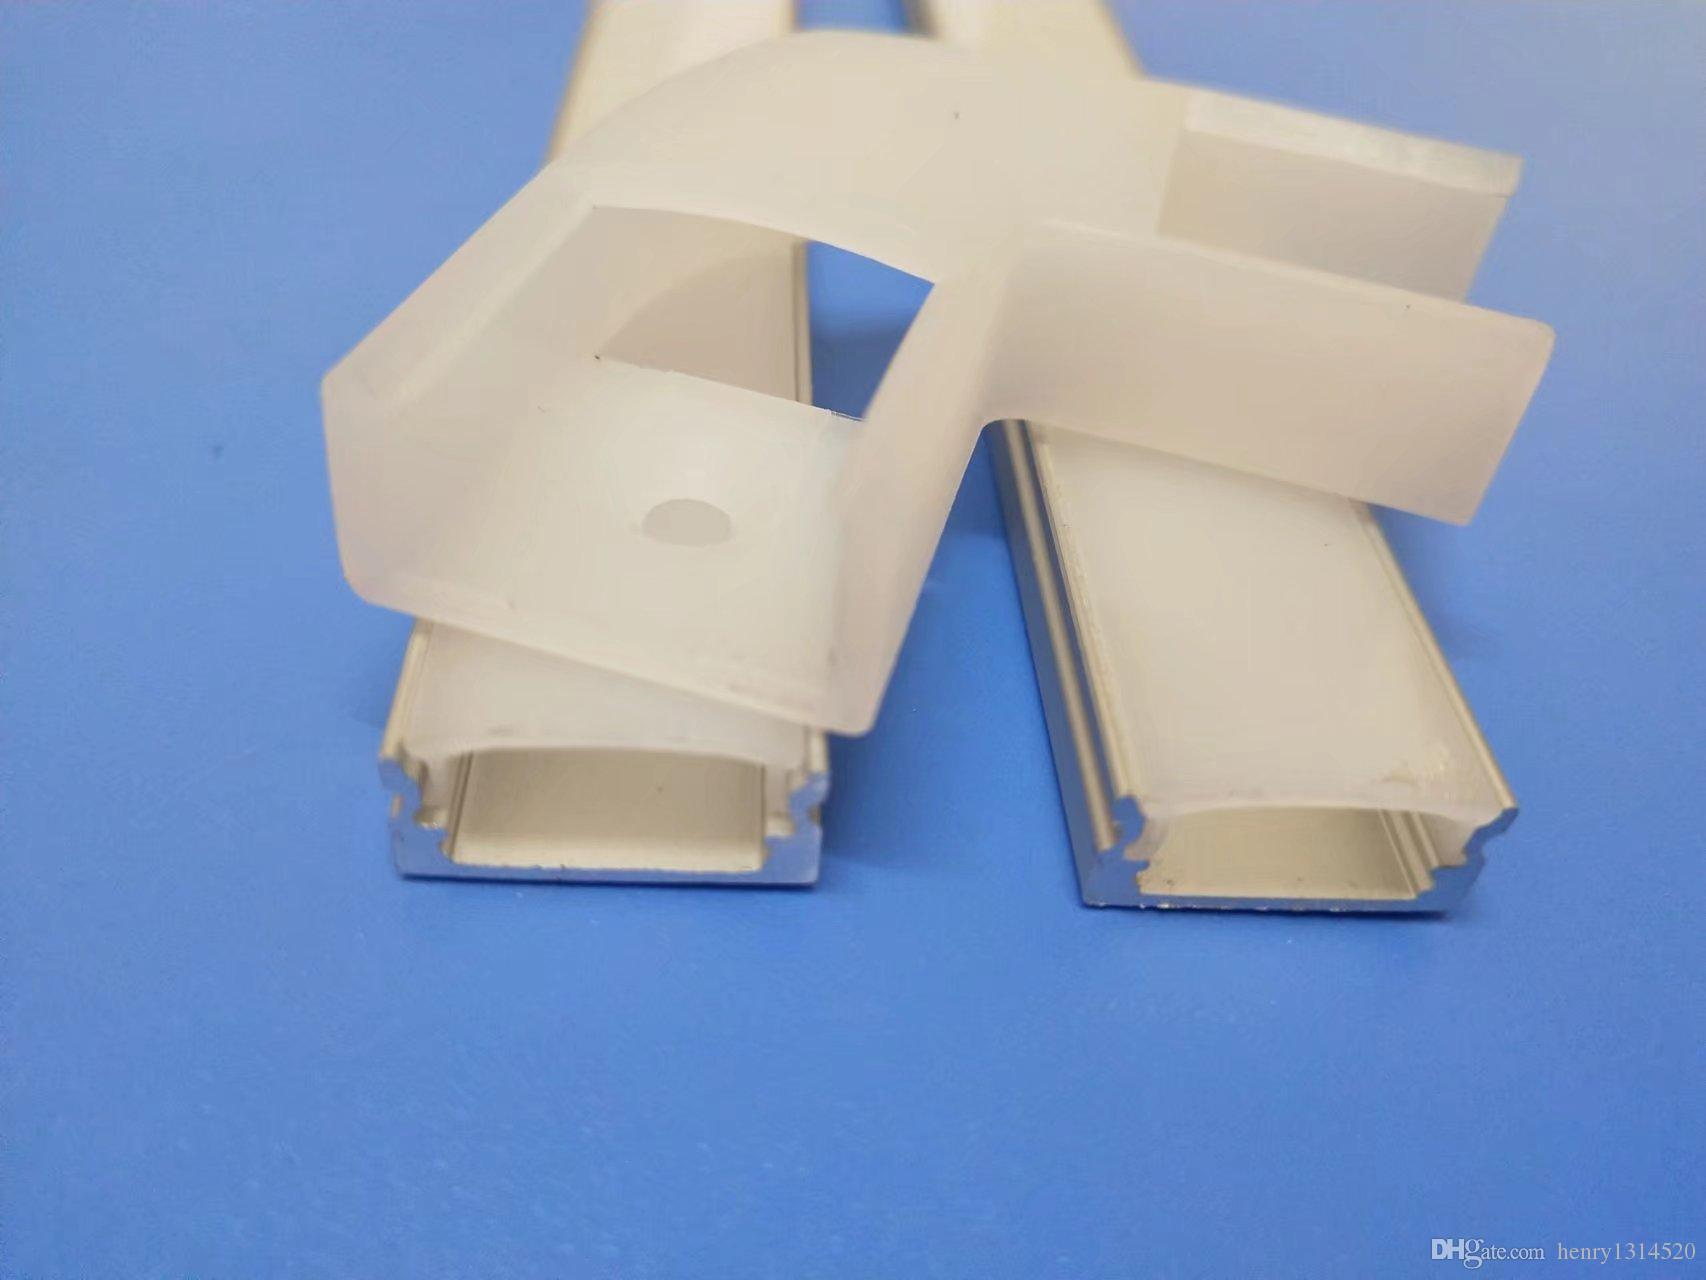 Hot-designed flat profile of pc cover and aluminum heatsink for 12mm led strip light with endcaps